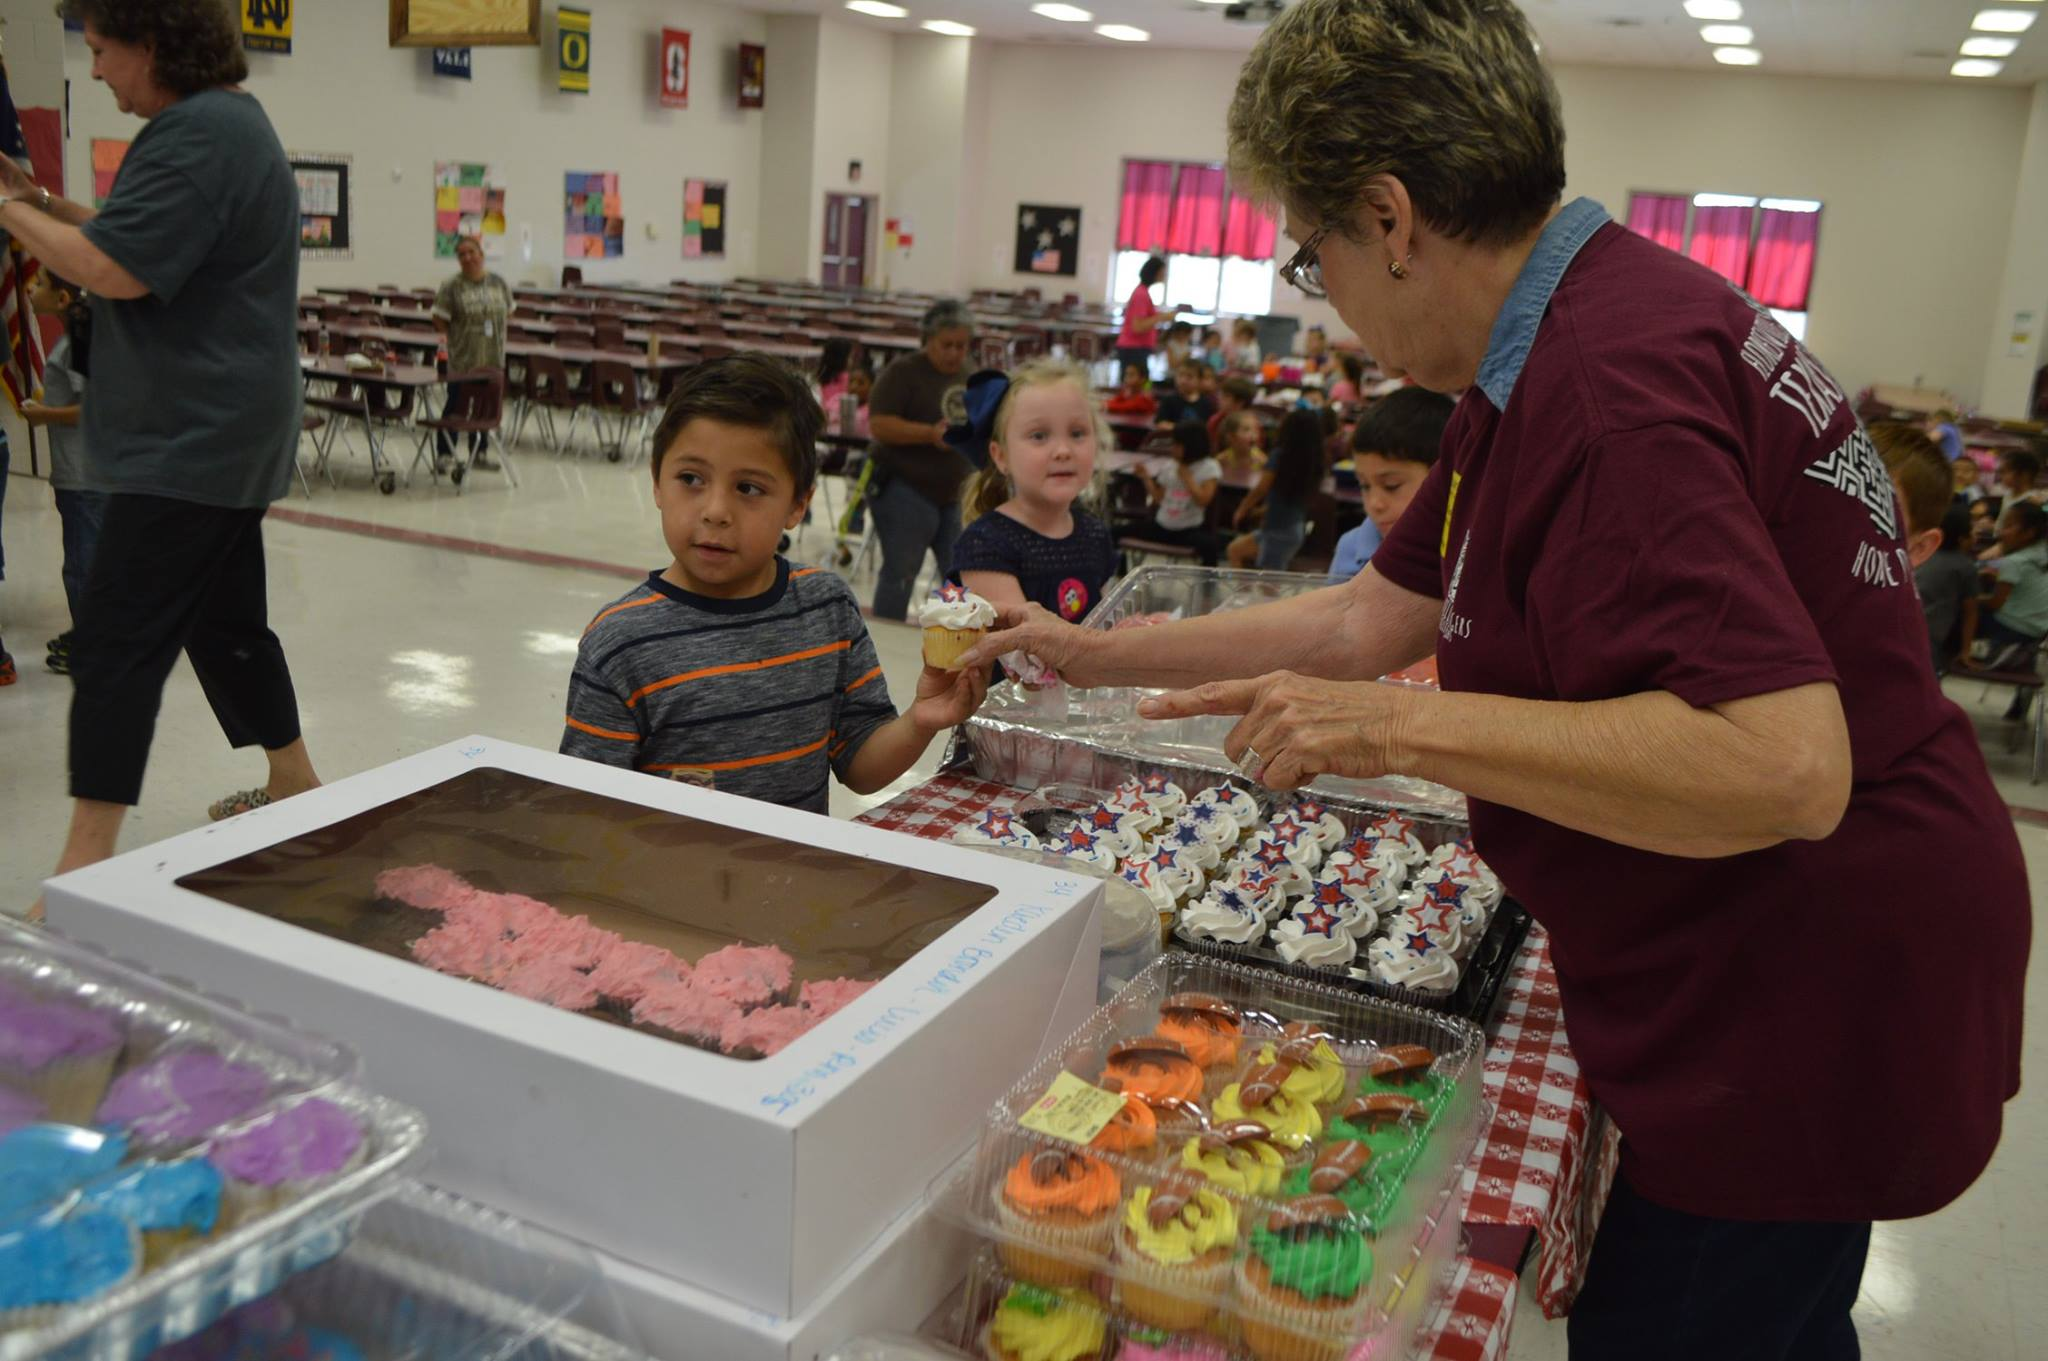 Classmates raise hundreds of dollars for Ryland Ward with sweet 'Cupcakes for Ryland' (Photos: Floresville ISD / Facebook)